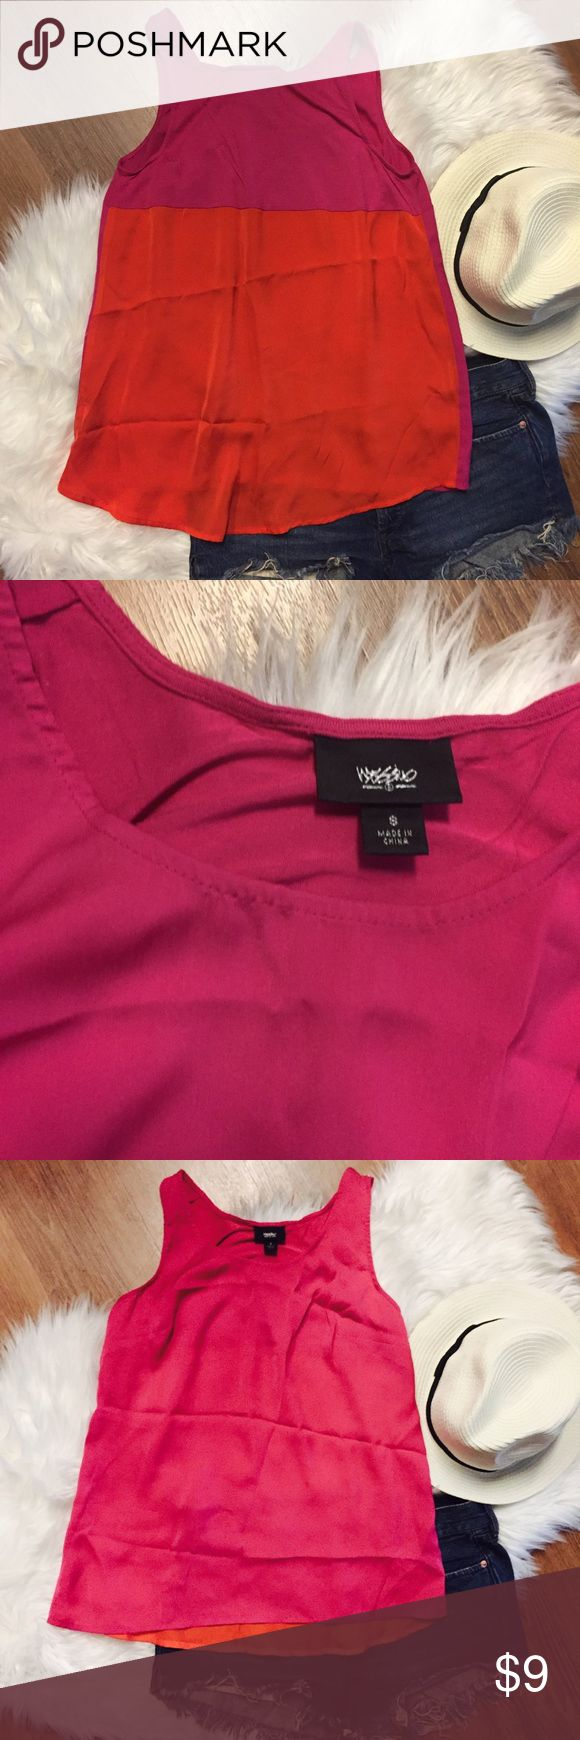 Colorblock Tank Top Mossimo Pink and orange Colorblock tank top - back is slightly longer than front. EUC in perfect condition- no signs of wear! Has always been washed according to care instructions and hung to dry. Wrinkled from being in drawer but ironing or steaming will easily remove these wrinkles! ✨ Bundles discounted! Reasonable offers accepted! MAKE ME AN OFFER Mossimo Supply Co. Tops Tank Tops